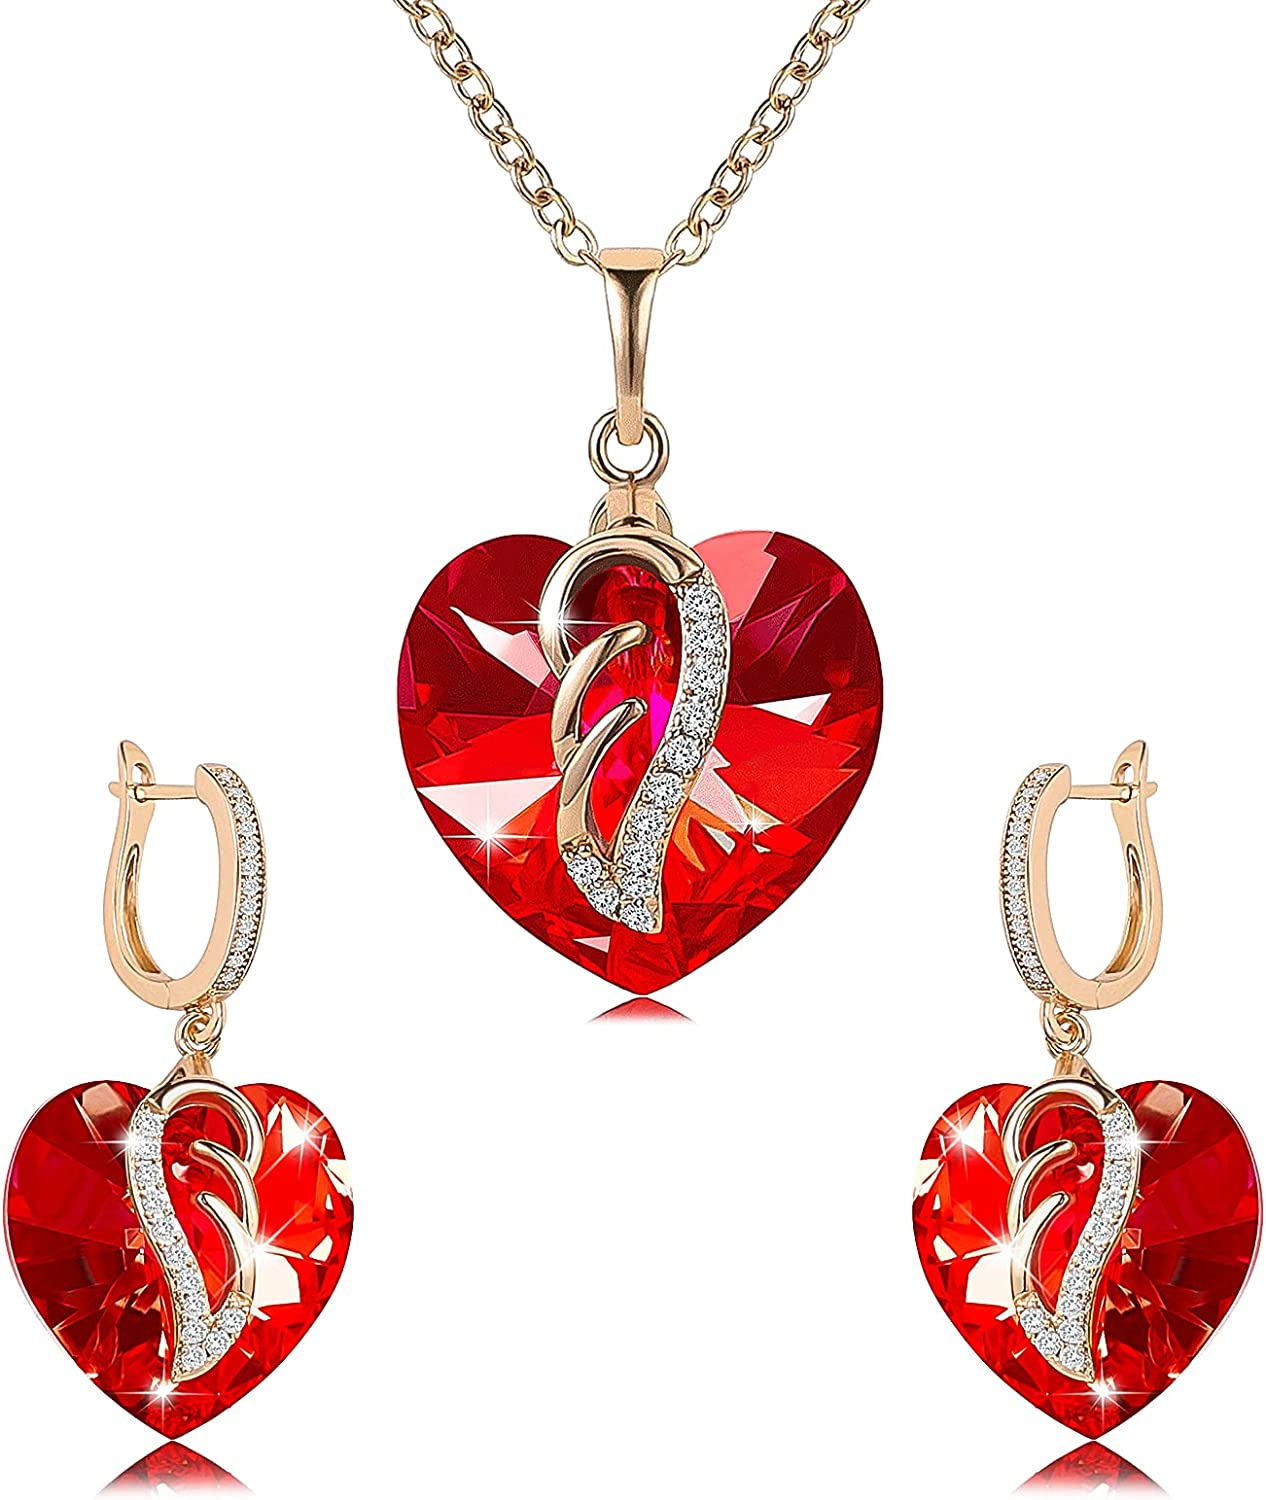 Austria Love Crystal Necklace And Earrings Jewelry Set Angel Wings 18K Gold Plated Women's Crystal Zircon Necklace Jewelry Gift